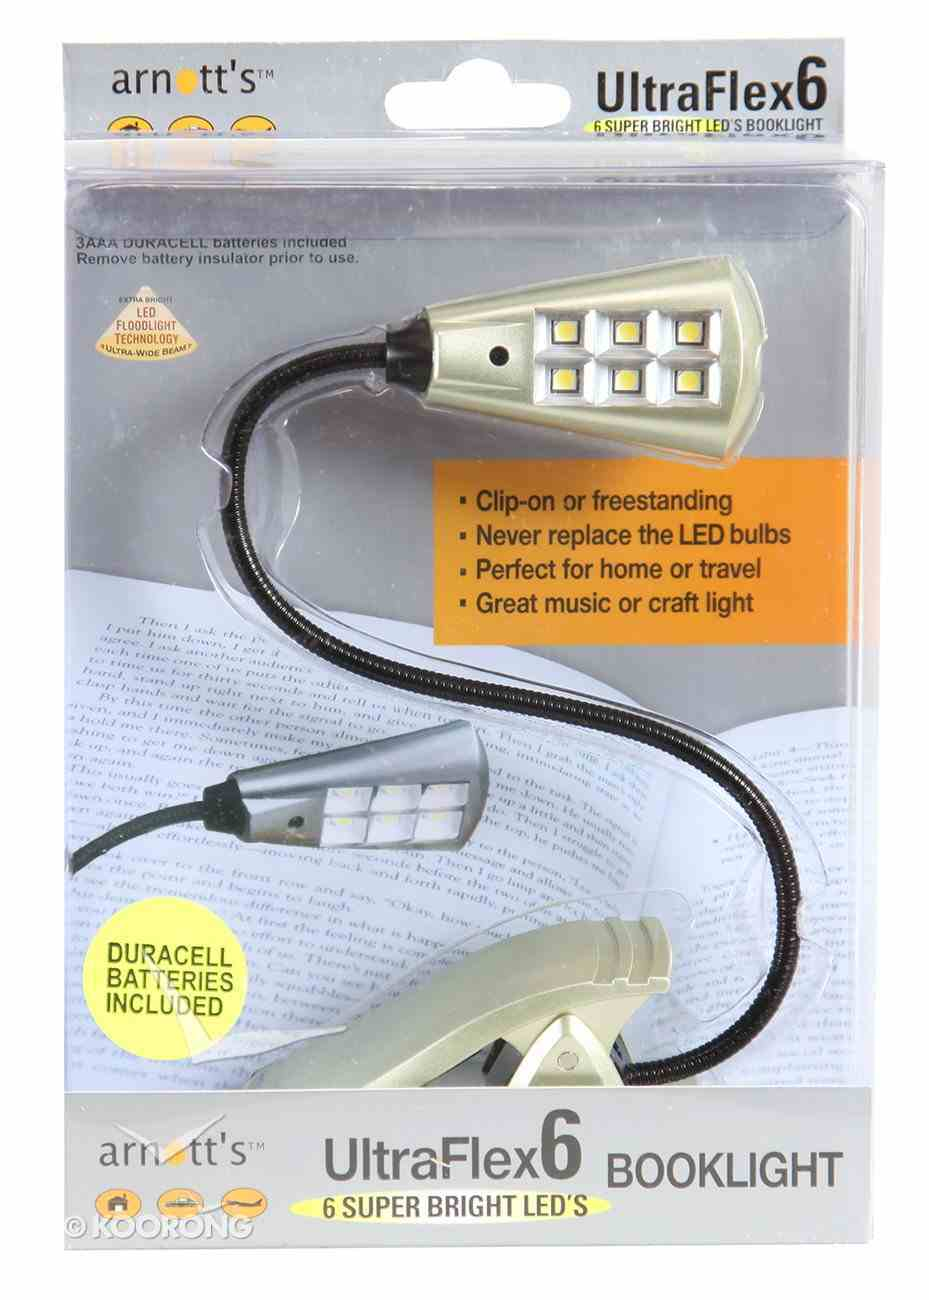 Ultraflex6 Booklight With 6 Super Bright Led's Silver Novelty